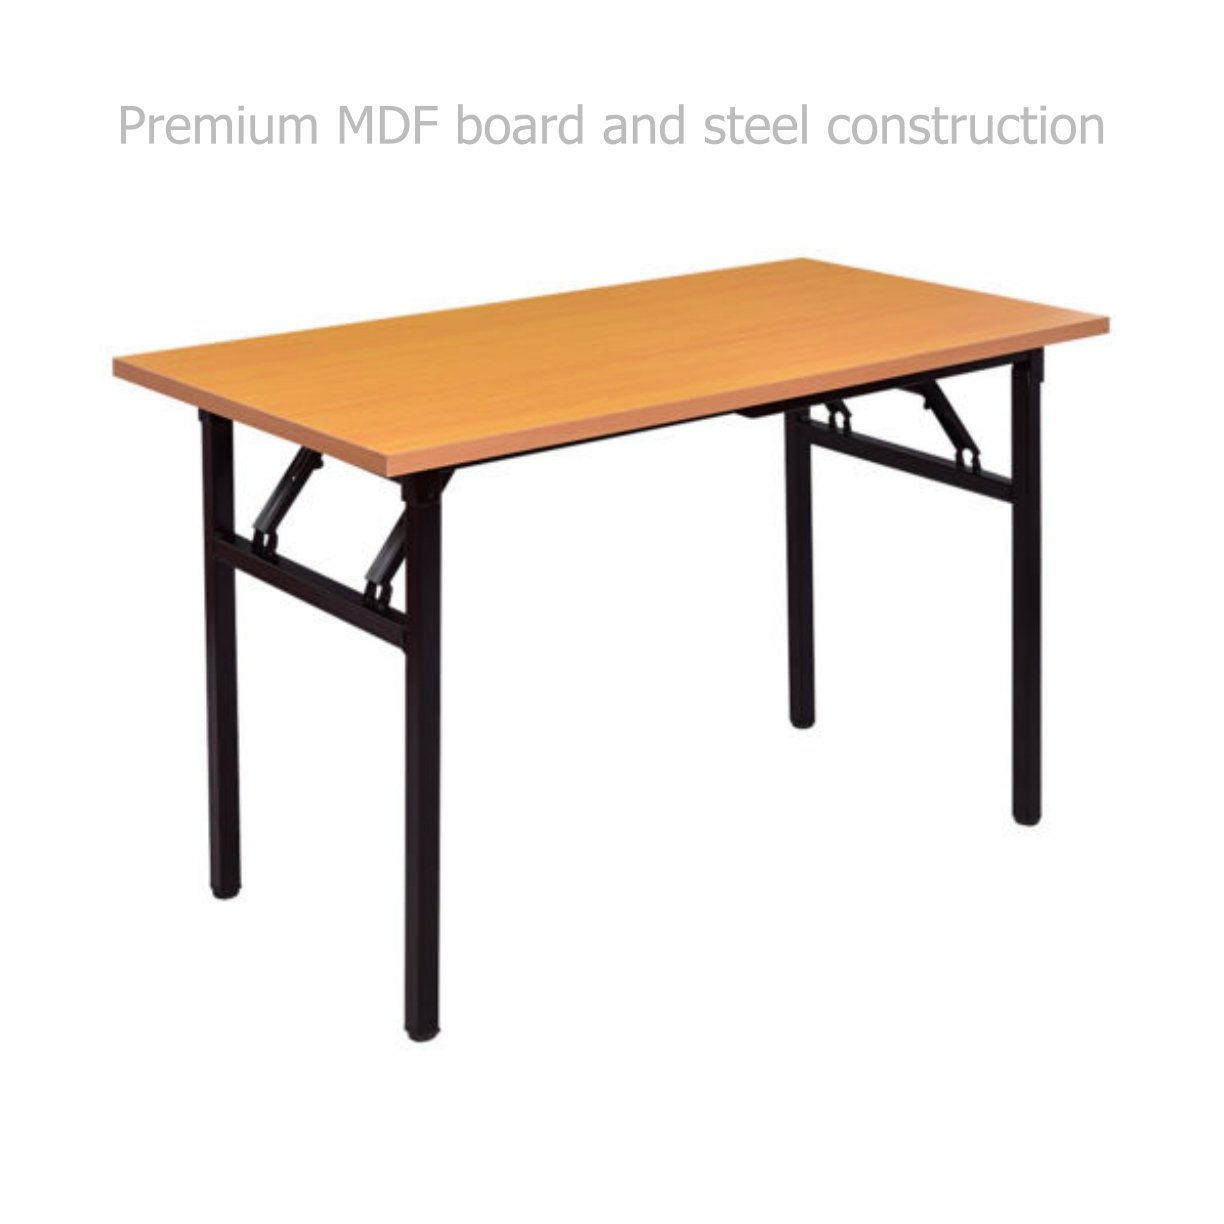 Modern Folding Table Laptop Computer Writing Multi-function Desk Durable MDF Board Powder Coated Steel Frame Home Office Furniture #1685